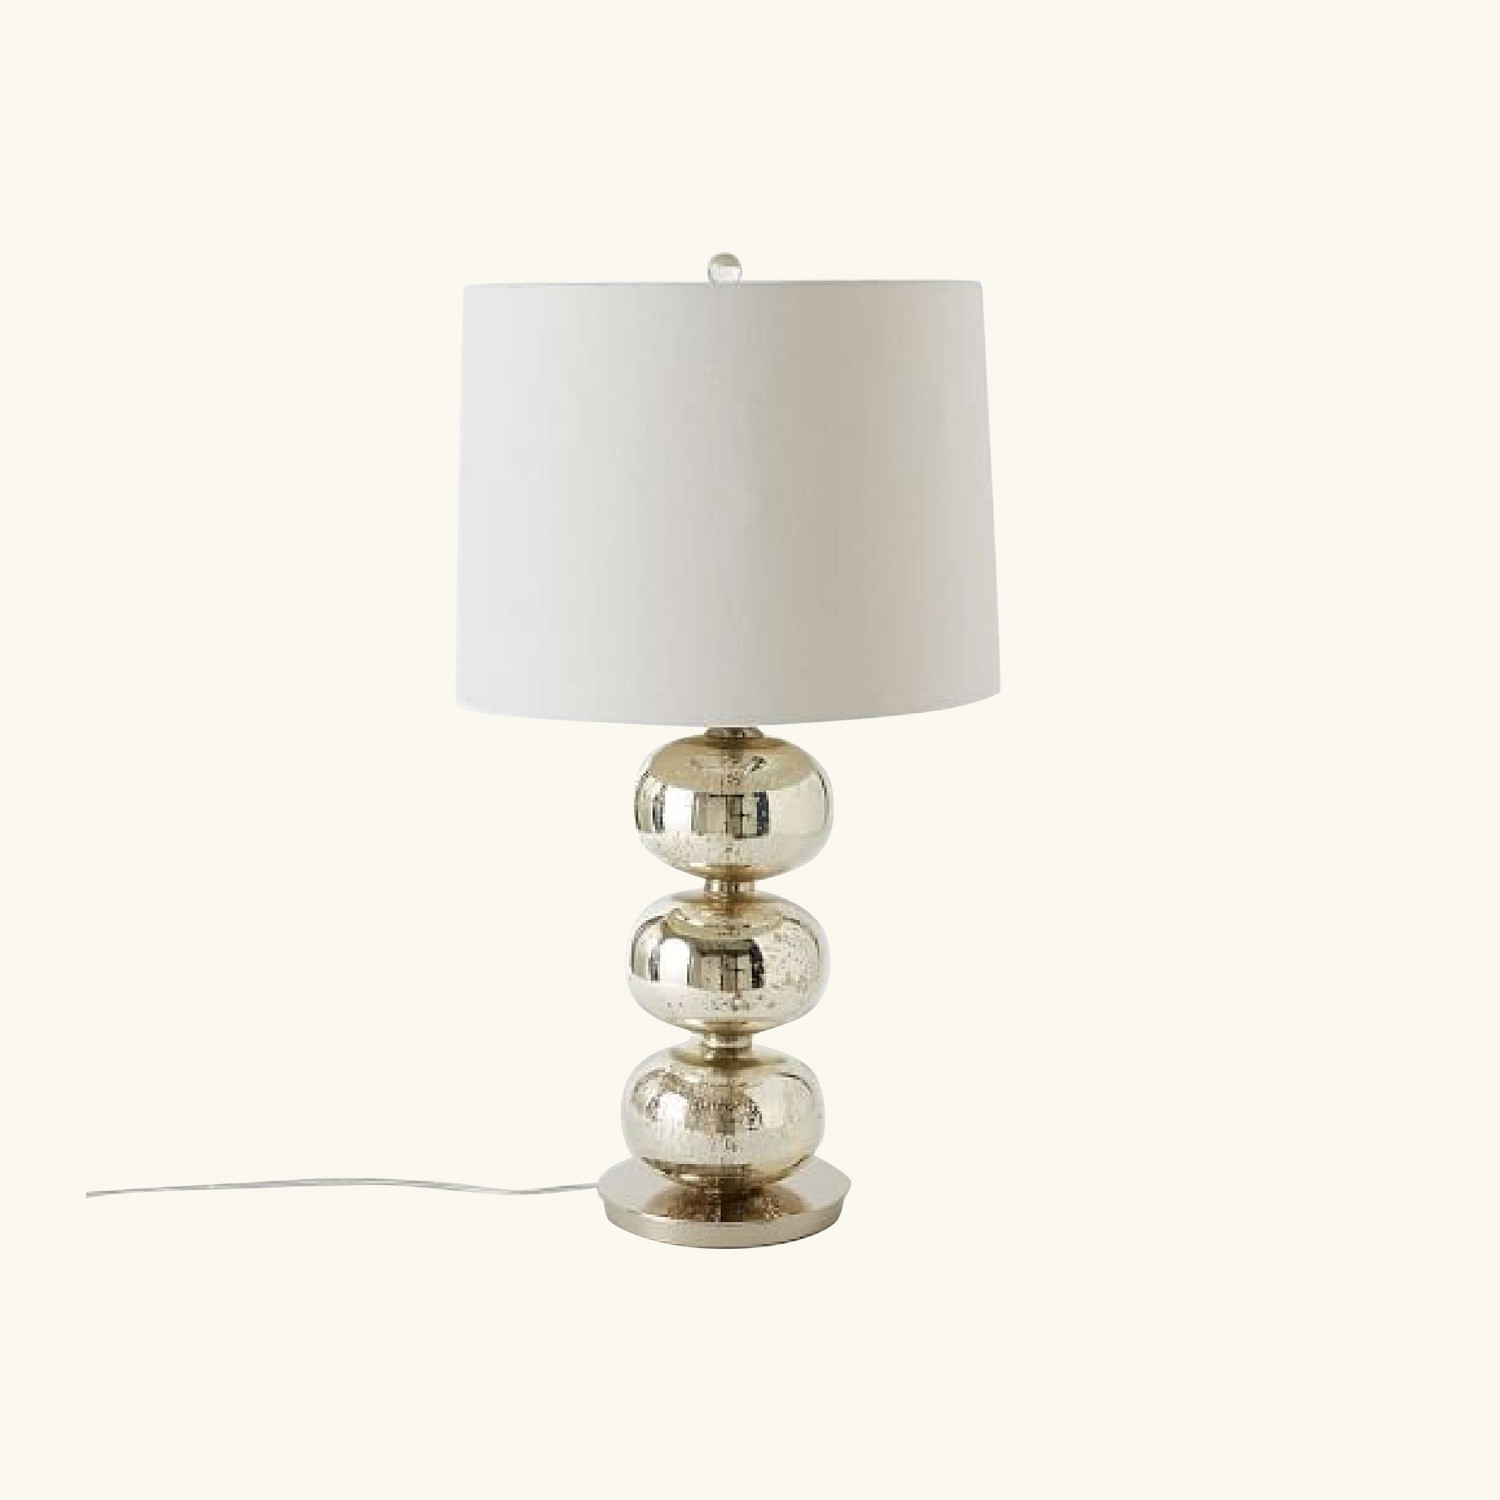 West Elm Abacus Table Lamp in Mercury/White Linen